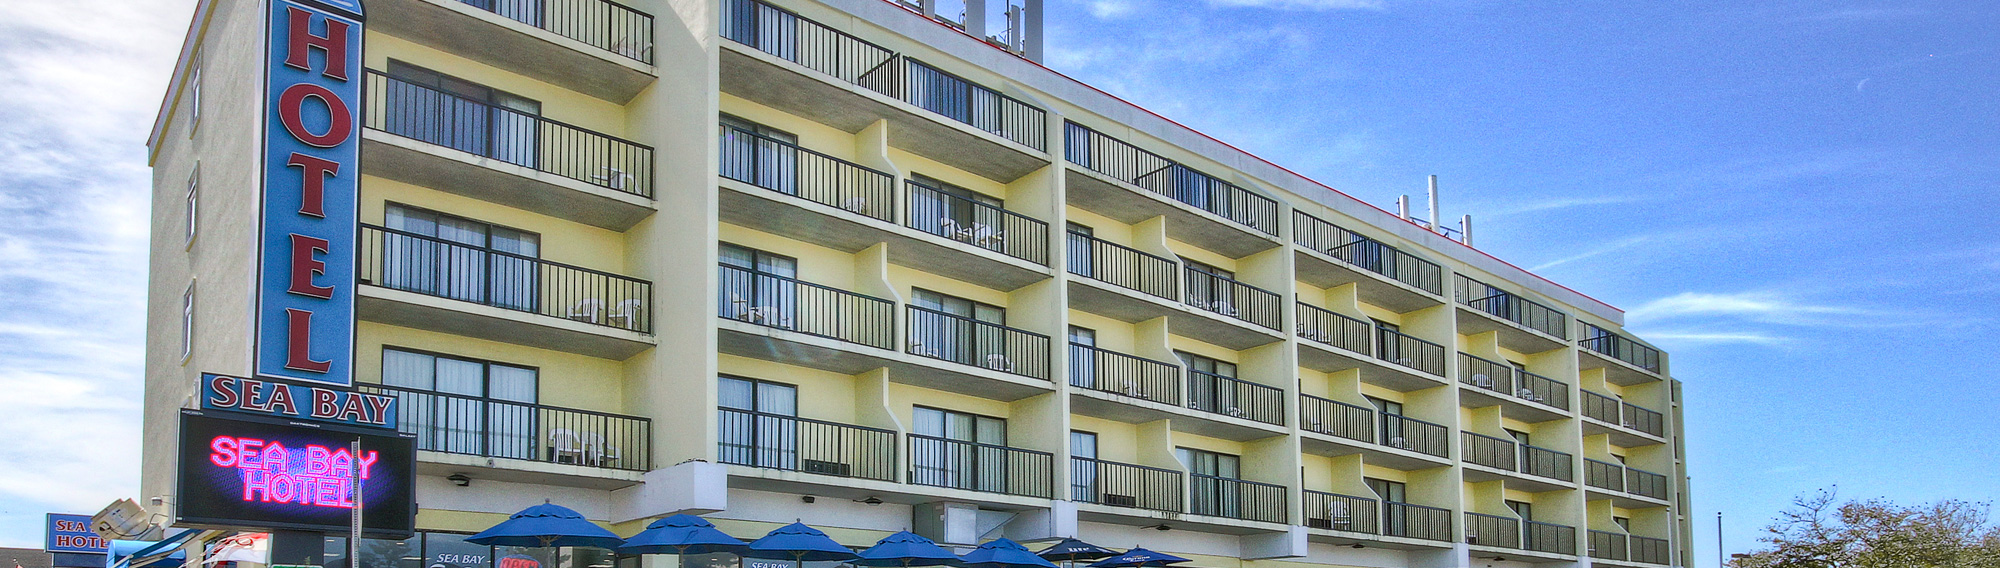 Hotels In Ocean City Md >> Contact Sea Bay Hotel Ocean City Md Bayside Rooms W Pool